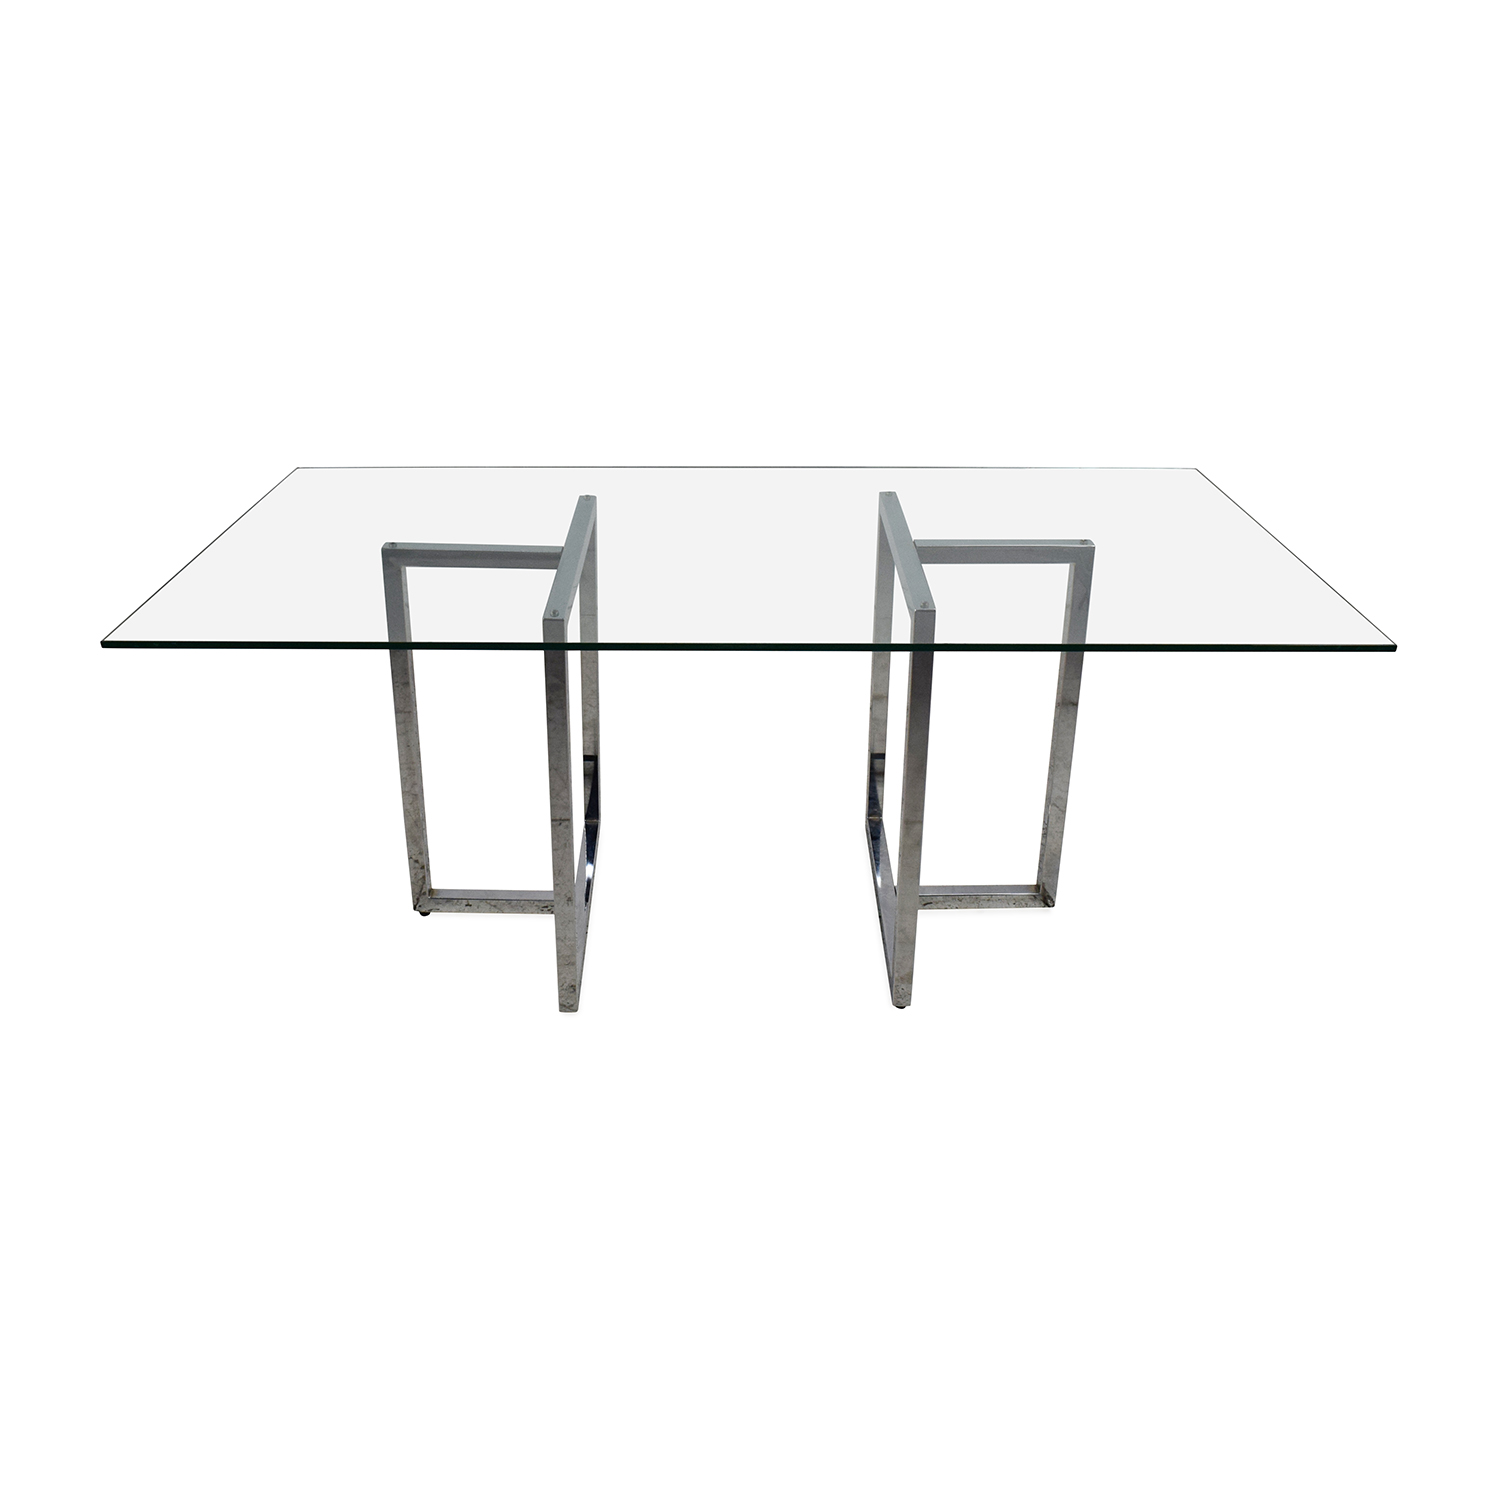 CB2 CB2 Silverado Dining Table Dinner Tables